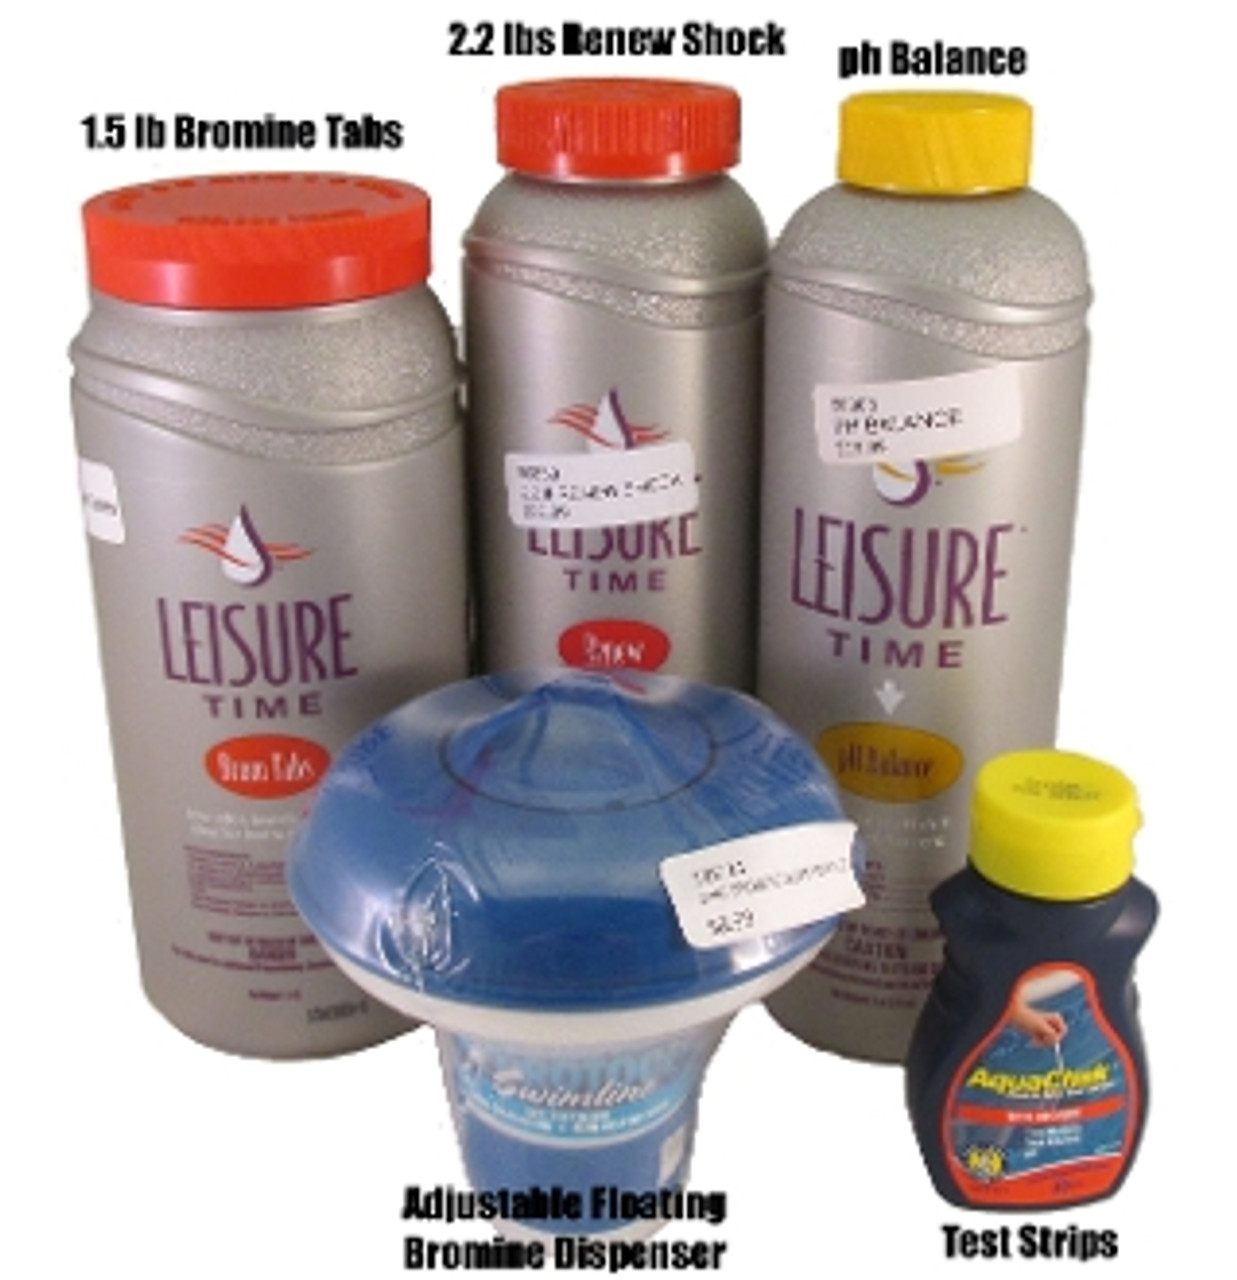 Bromine Tab Floating Hot Tub Startup Kit